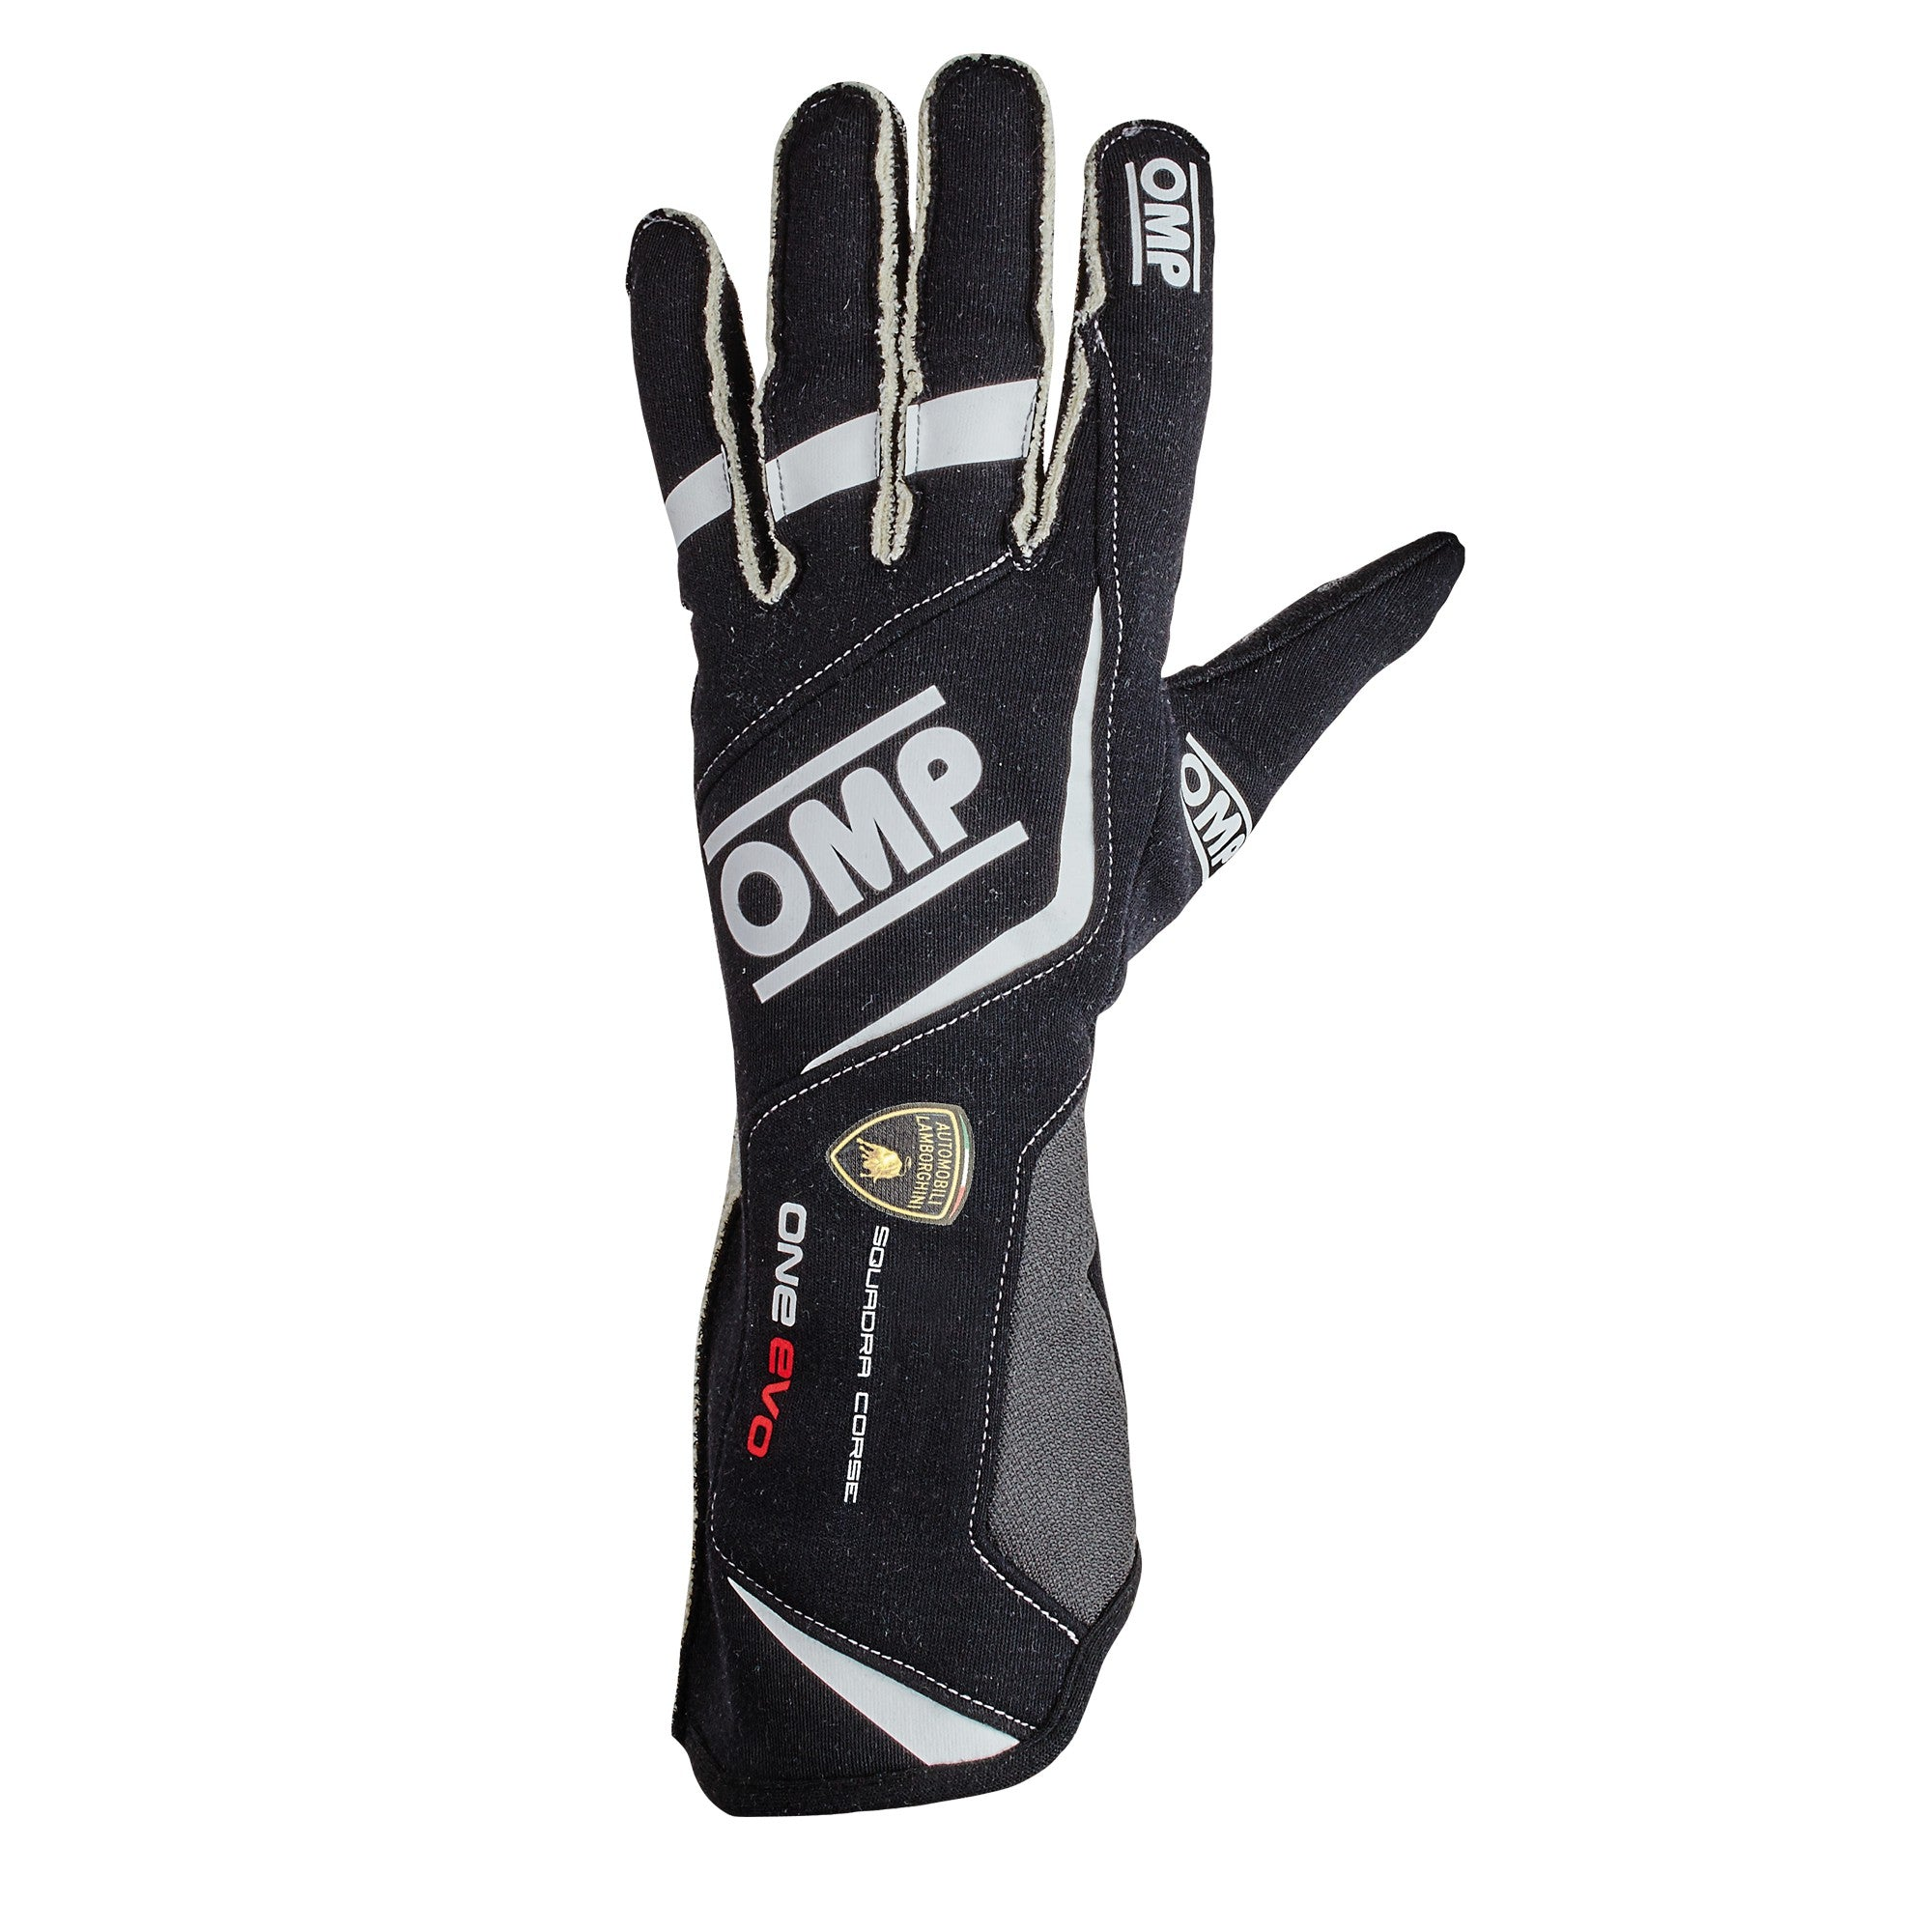 OMP NOMEX RACING GLOVES LAMBORGHINI EDITION ONE-EVO